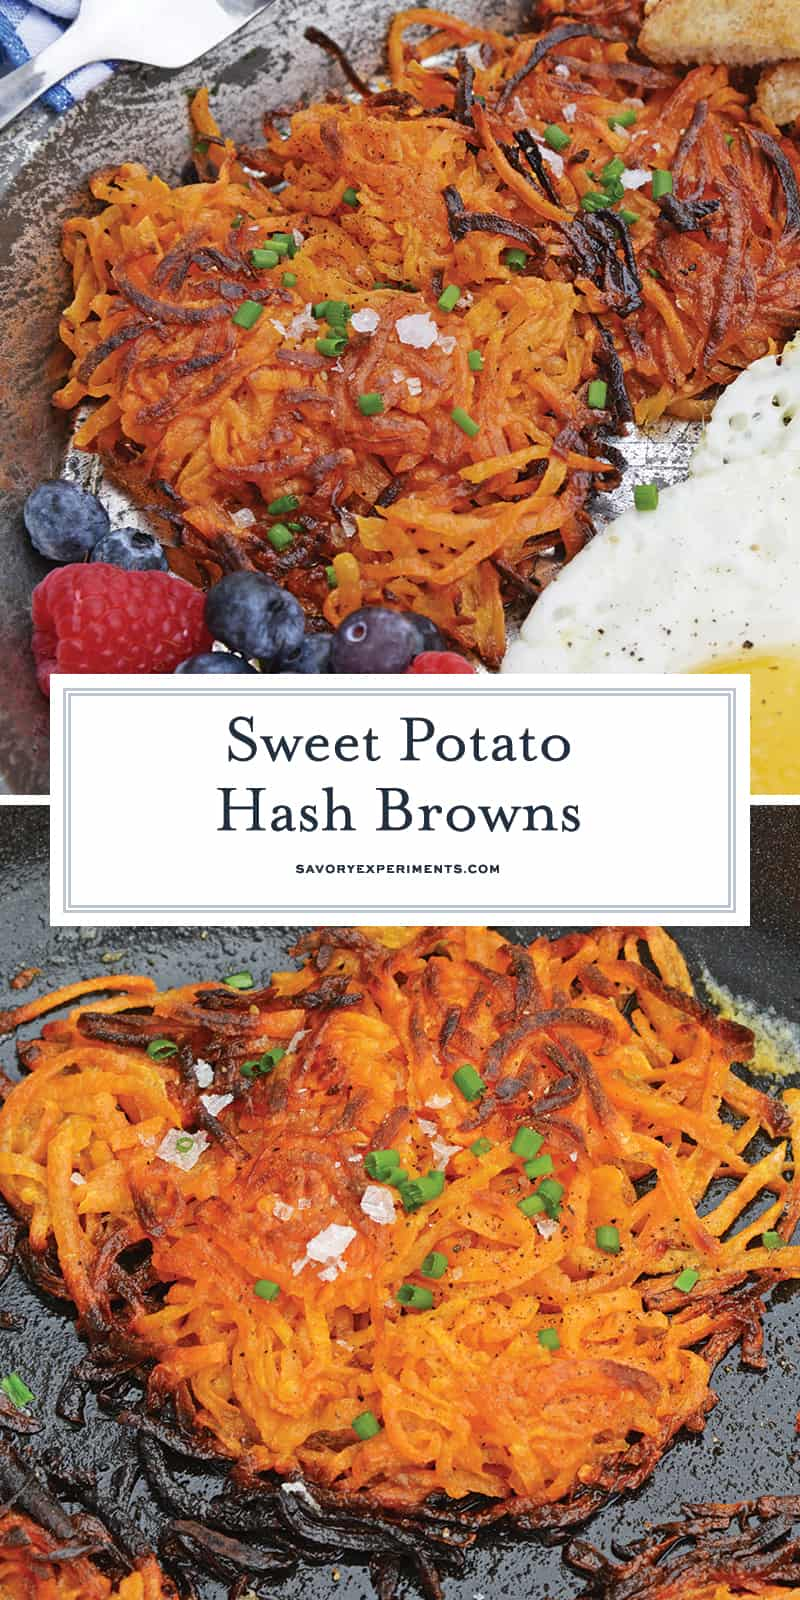 Sweet Potato Hash Browns are a simple breakfast recipe made with shredded sweet potatoes. Only 3 ingredients and a few minutes to cook! #sweetpotatohashbrowns #shreddedsweetpotatoes www.savoryexperiments.com